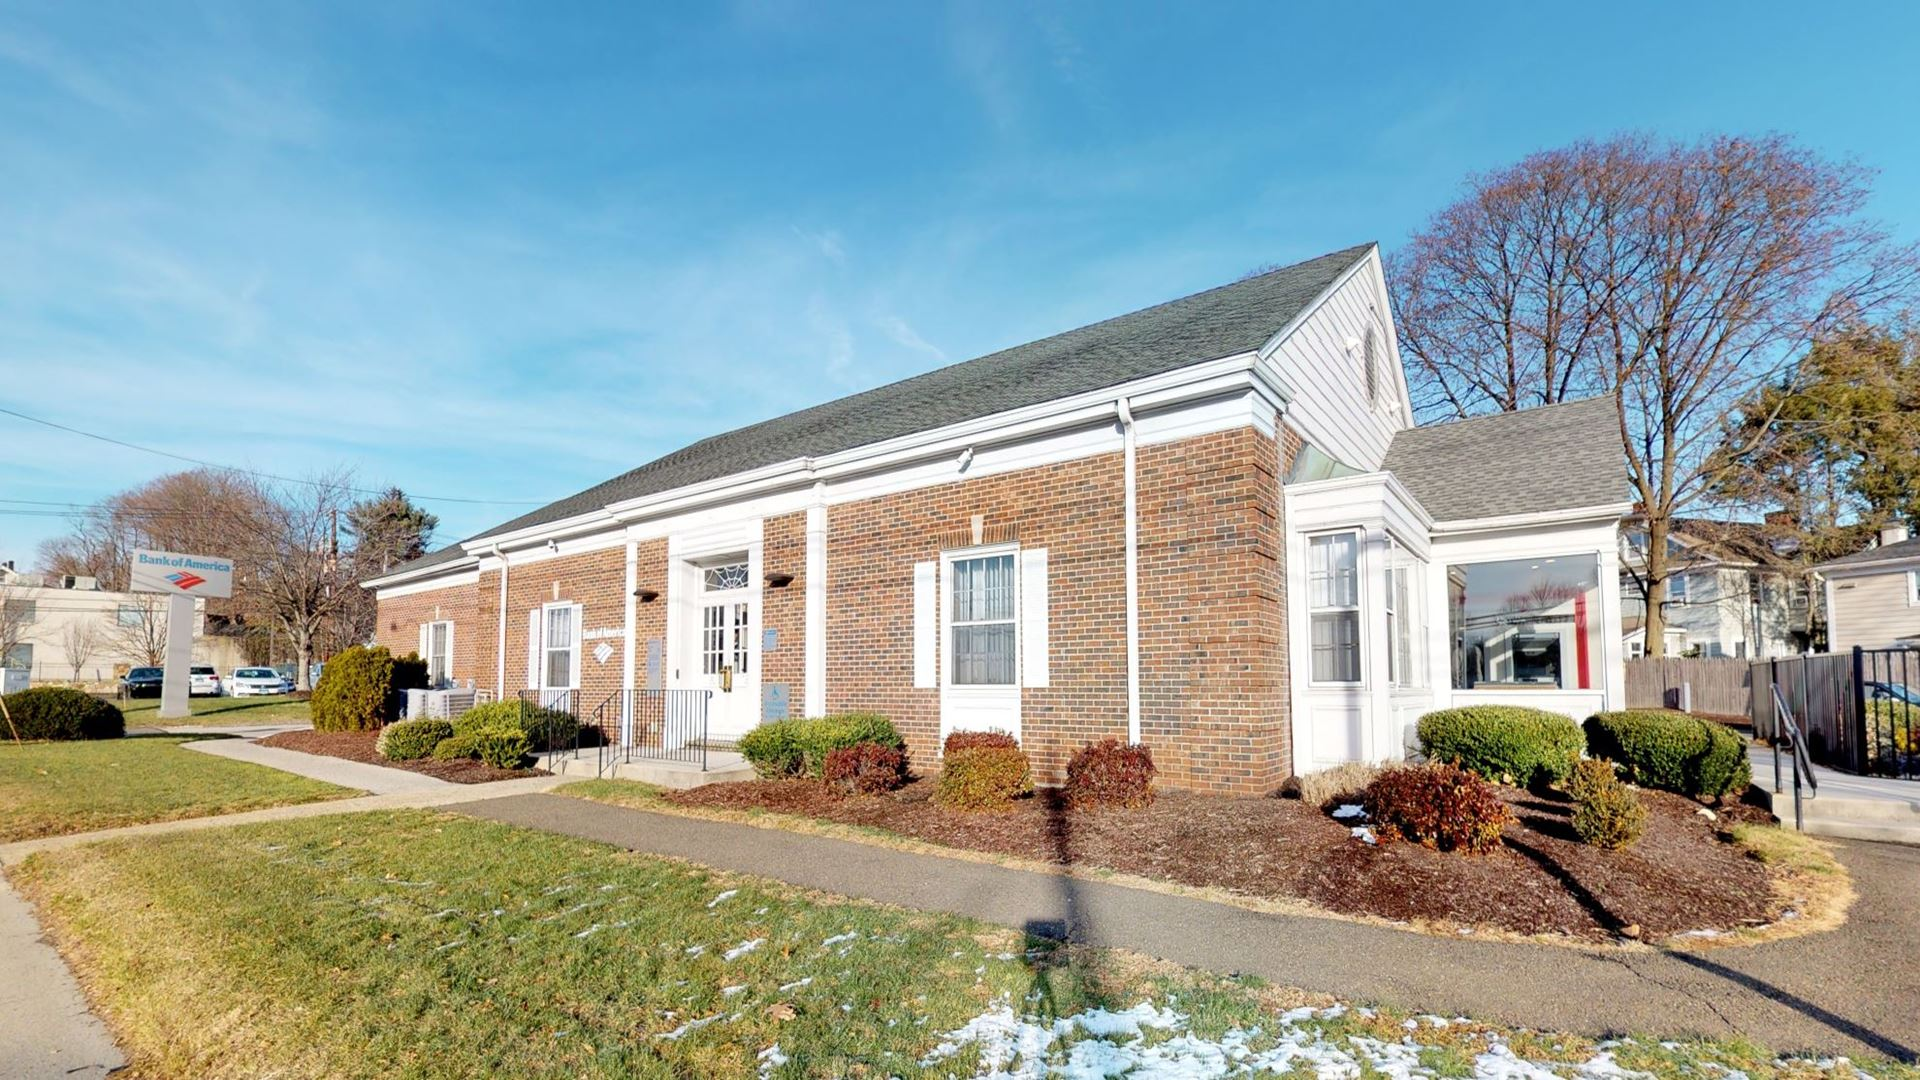 Bank of America financial center with drive-thru ATM   220 Main St, Norwalk, CT 06851